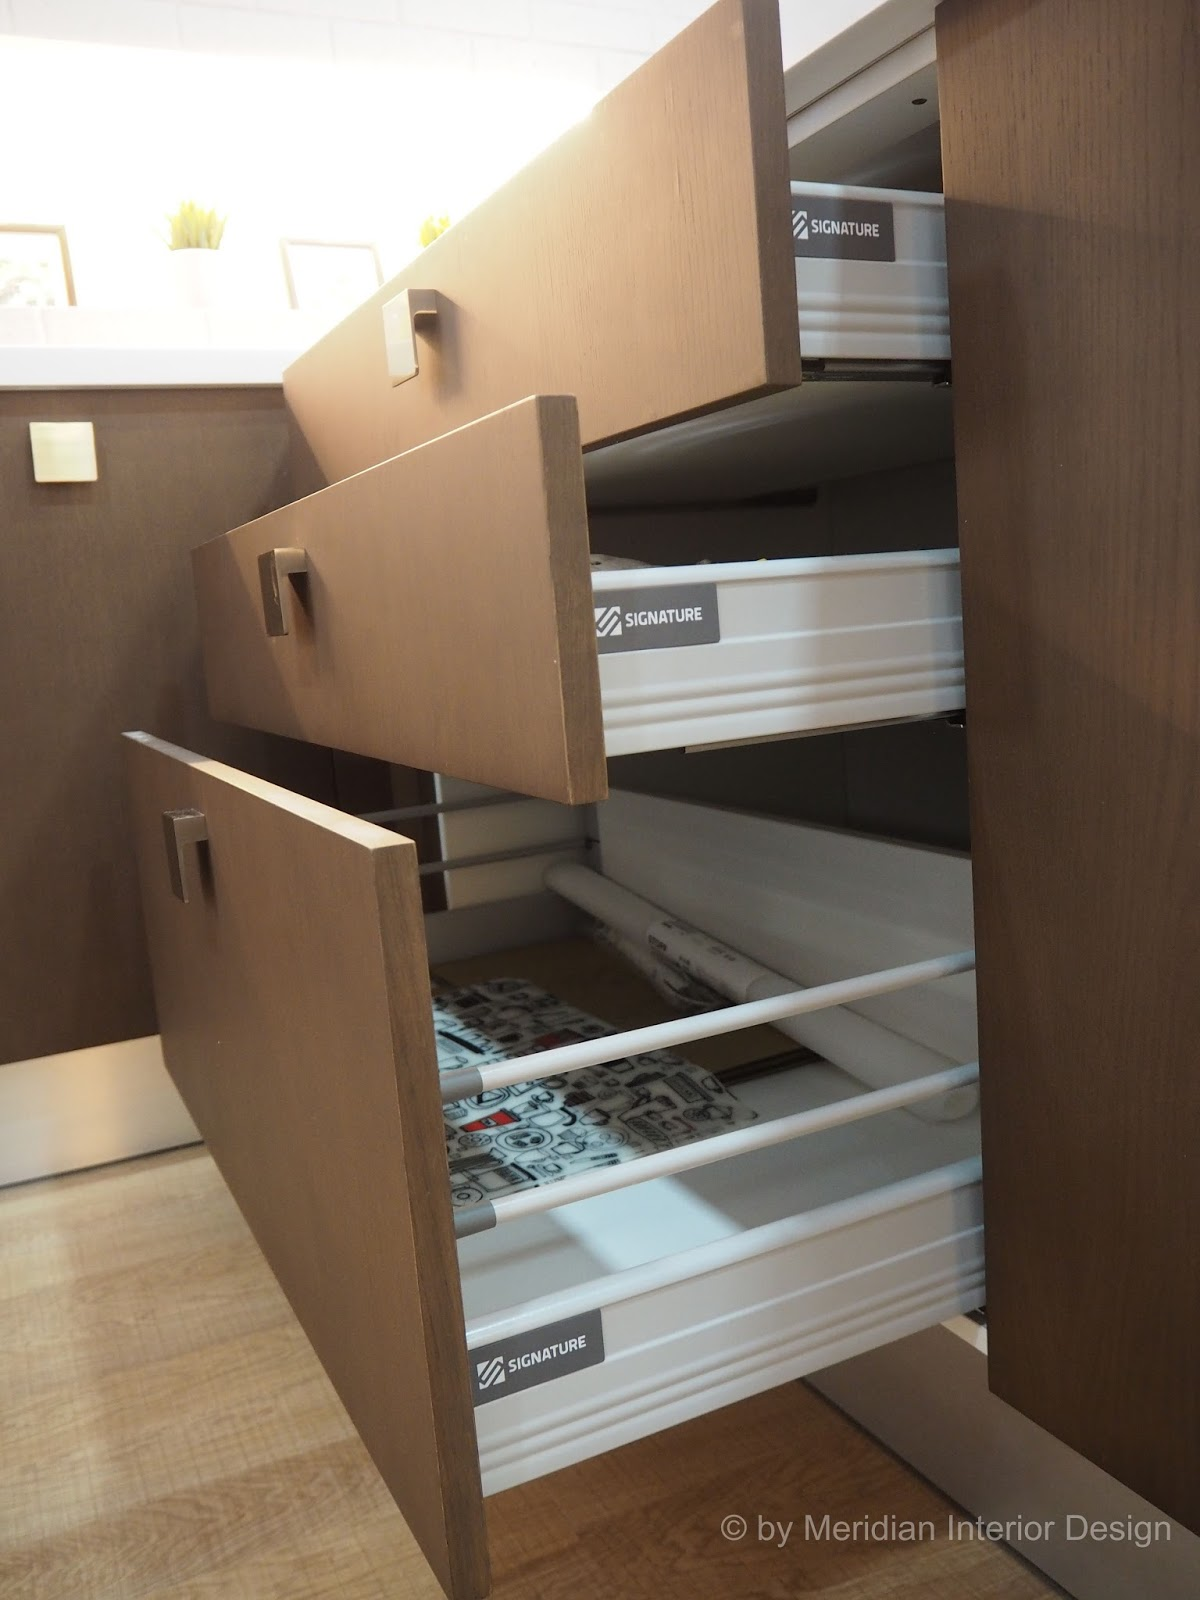 quality brand kitchen cabinets womens shoes meridian interior design and in kuala